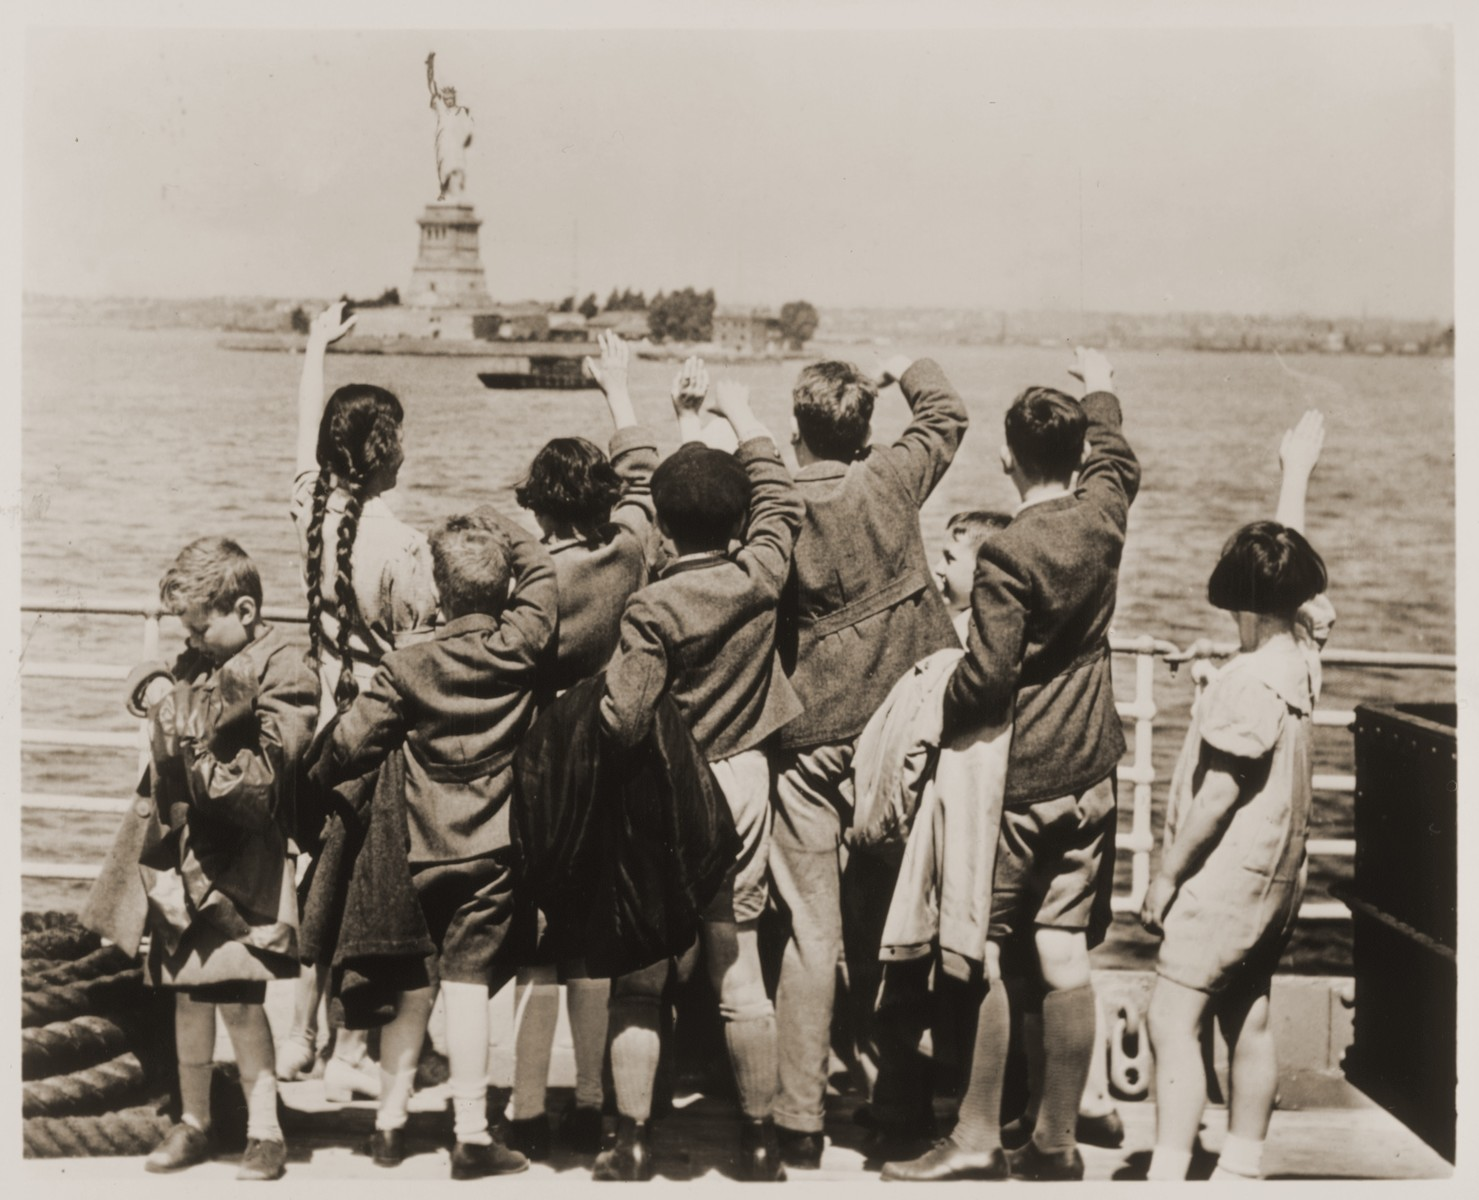 Jewish refugee children wave at the Statue of Liberty as the President Harding steams into New York harbor.  These children are among a group of fifty Jewish refugees (25 boys and 25 girls) from Vienna, aged 5 to 14, who are en route to Philadelphia, where they will be placed with foster families.  The children were accompanied by Gilbert J. Kraus, a Philadelphia attorney, and his wife Eleanor, who had worked for months to secure their admission into the U.S.  Among those pictured is Johanna Braun Gitlin (two, long braids).